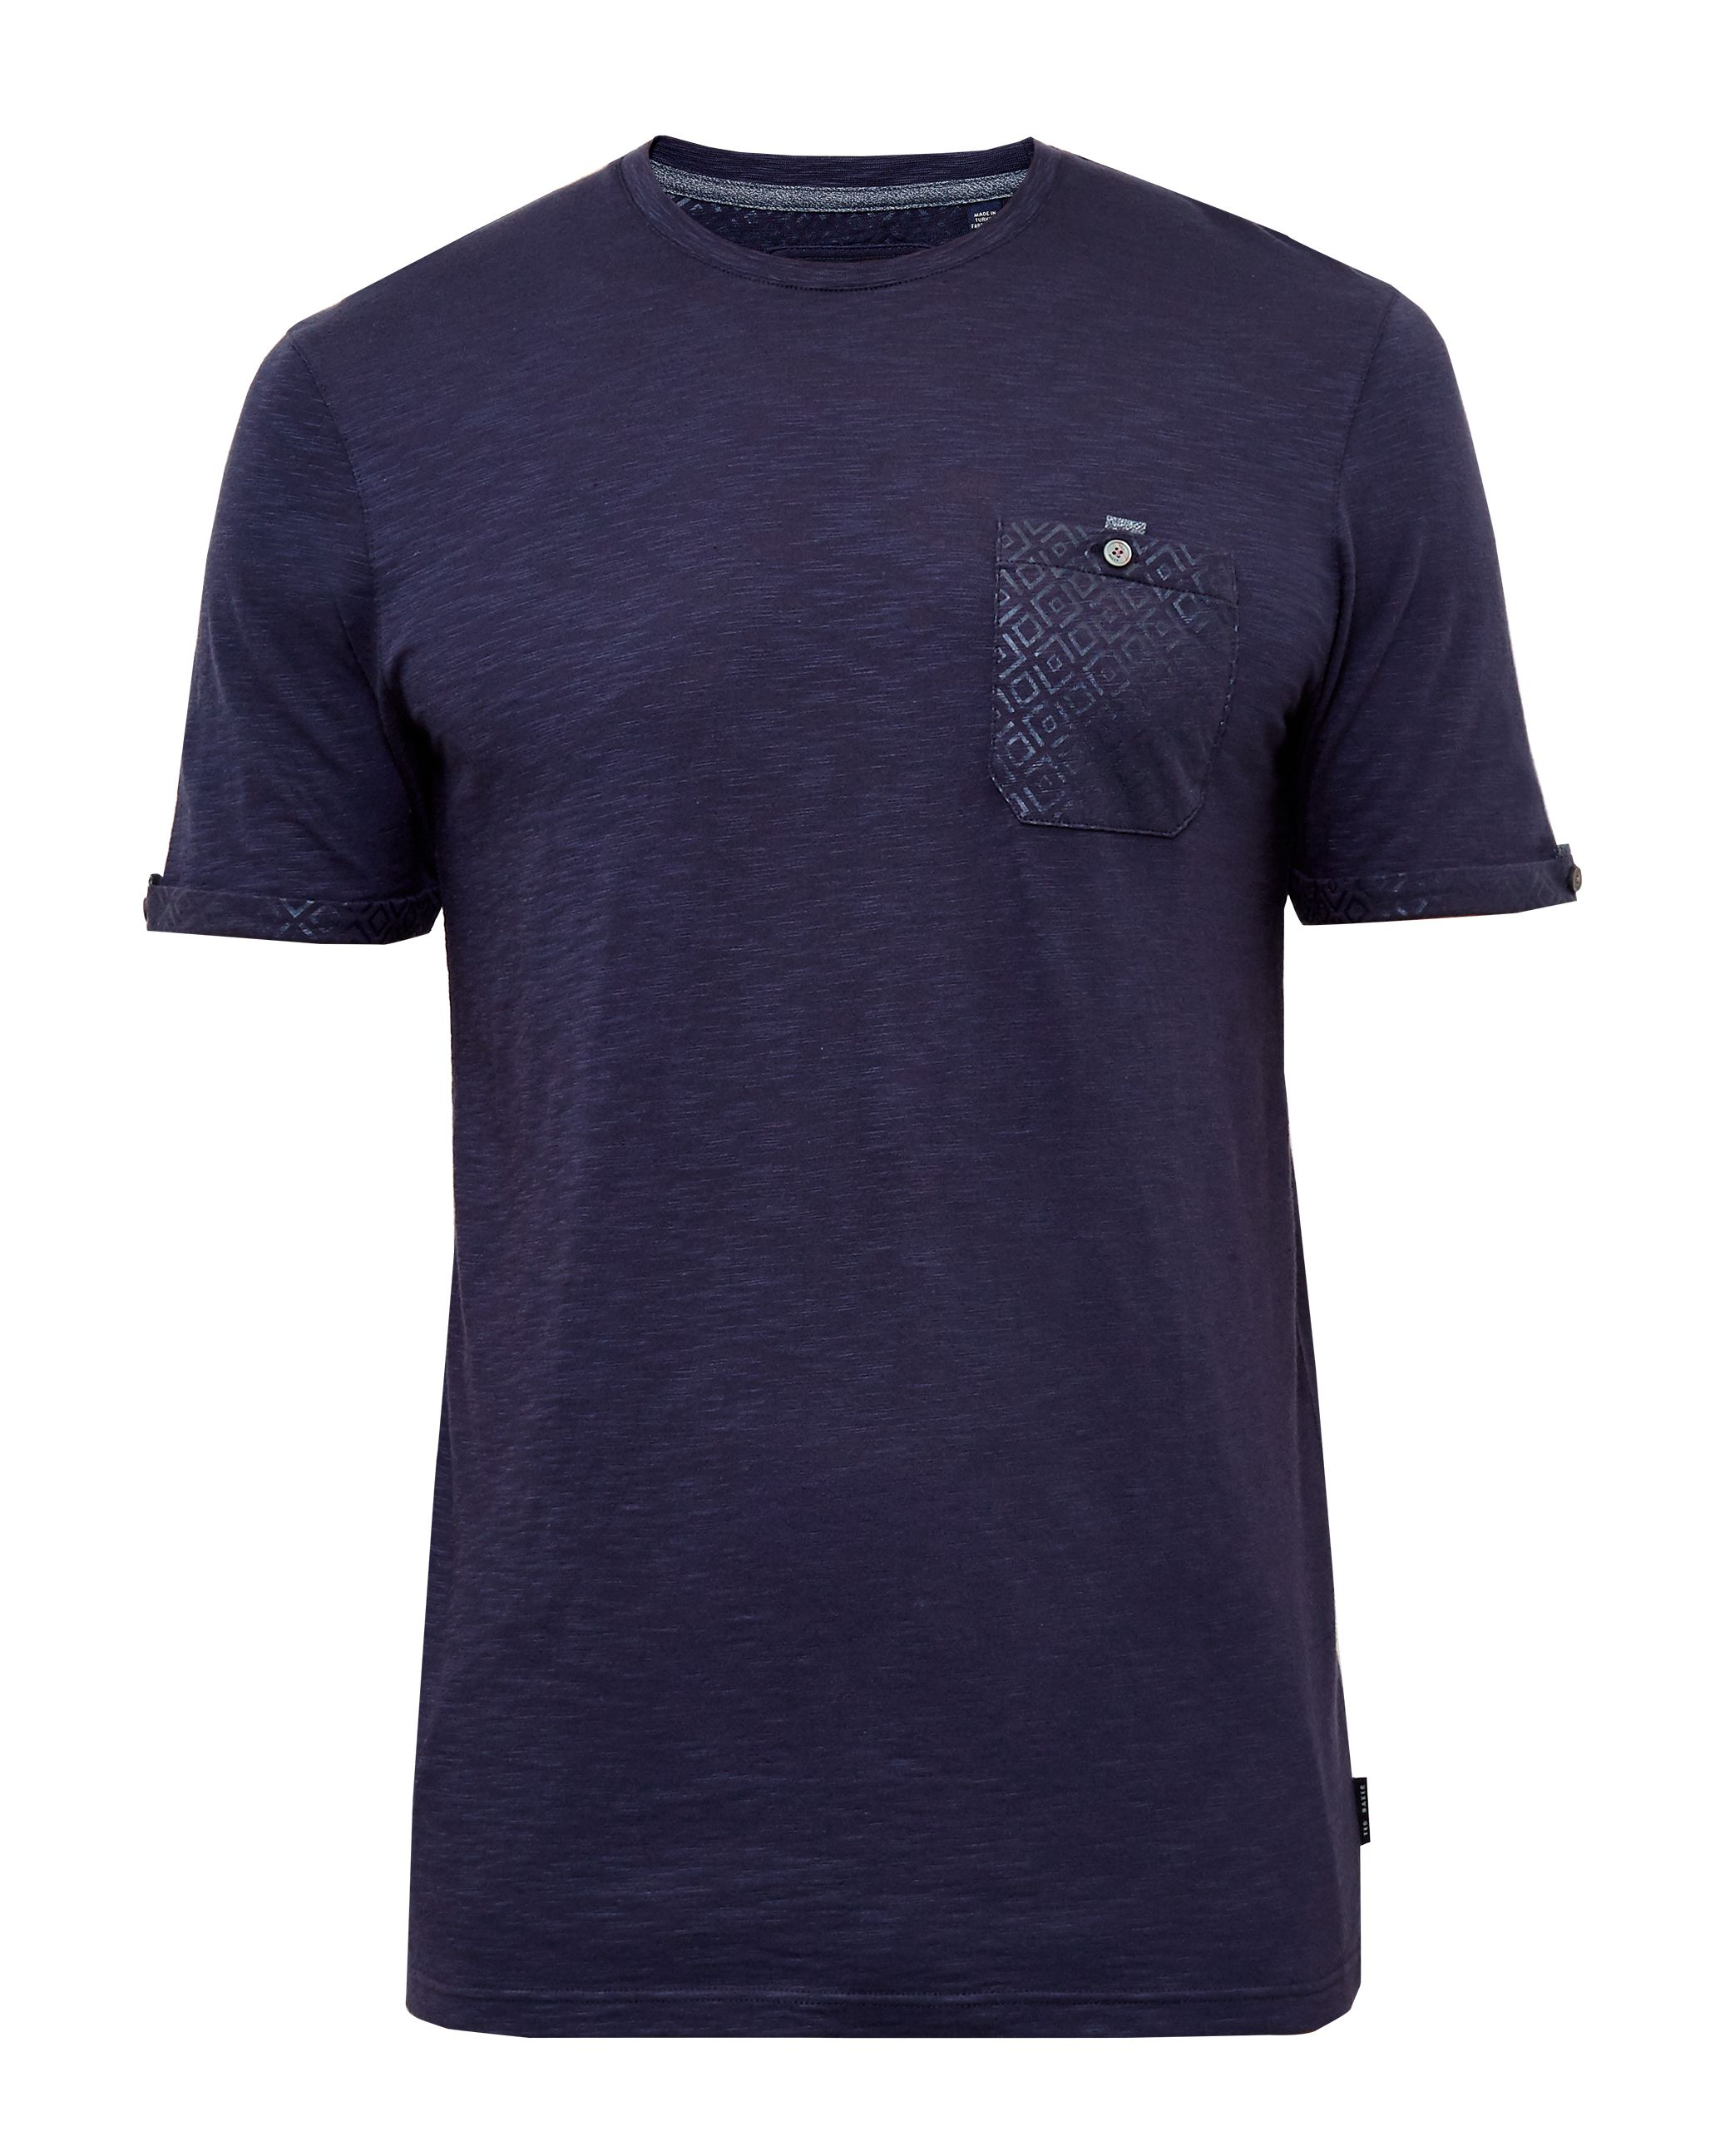 Mens Ted Baker Apel Printed Pocket TShirt Navy